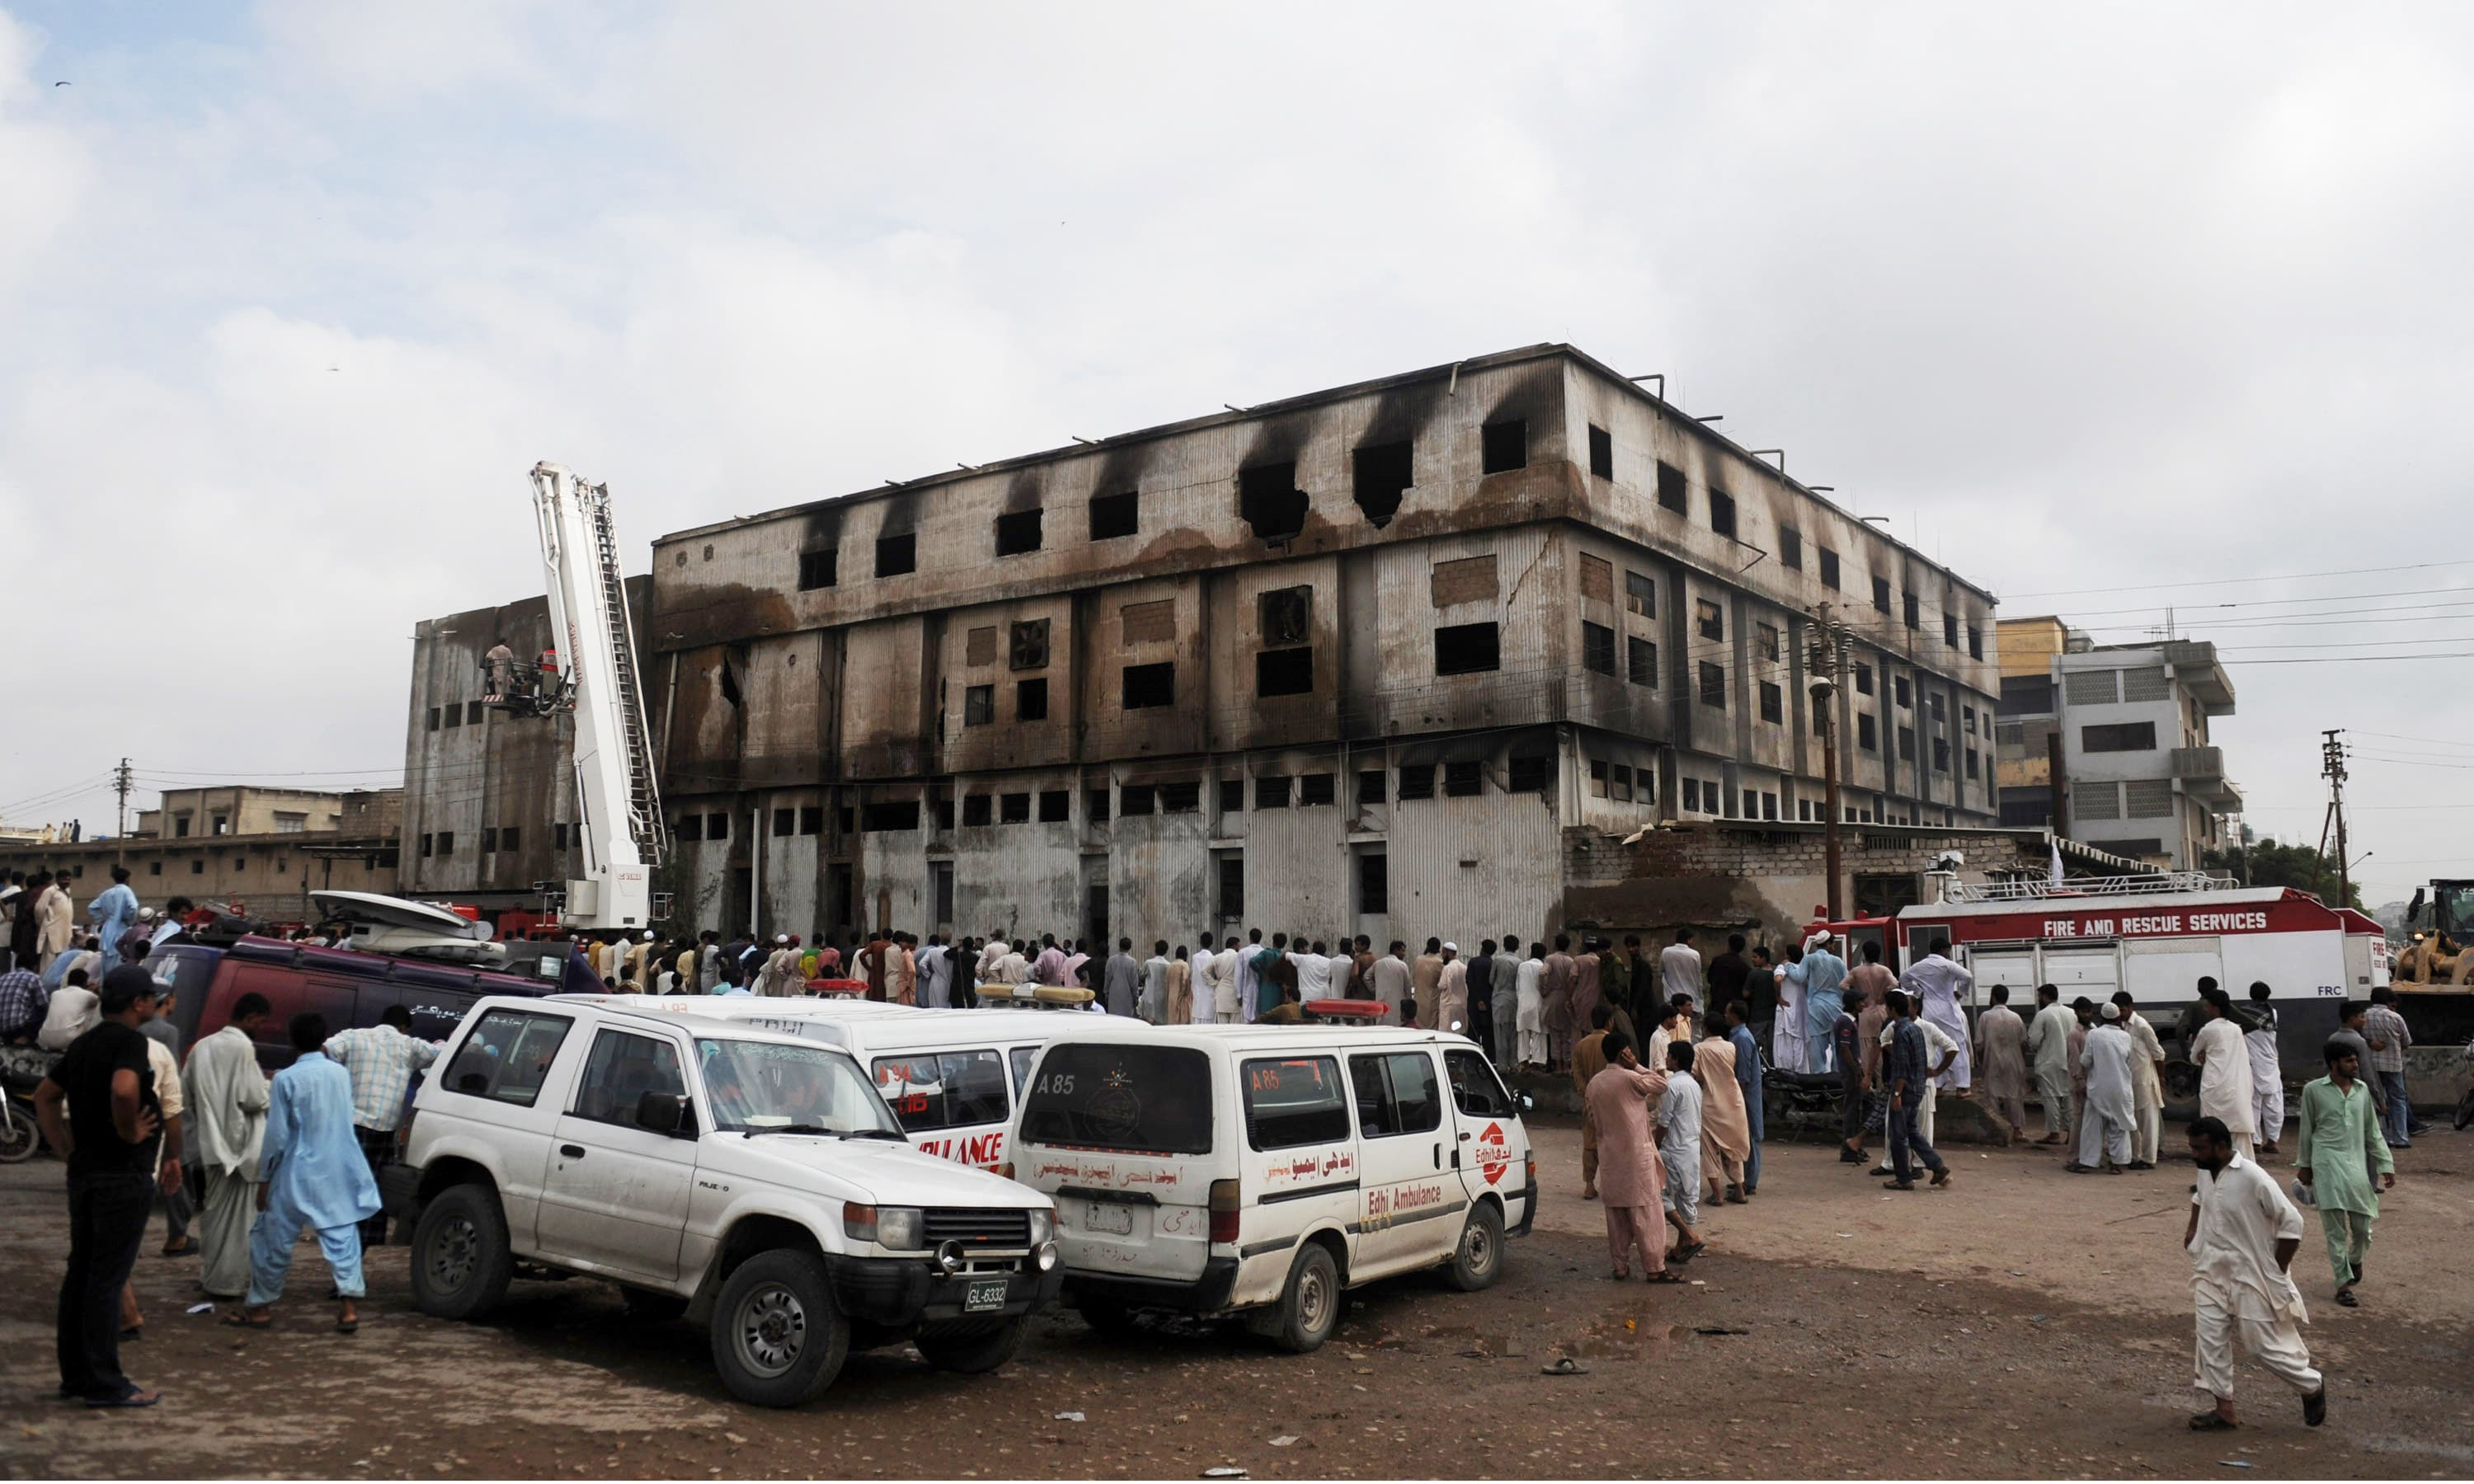 Lawsuit opens in Germany against textile company over deadly Baldia factory fire